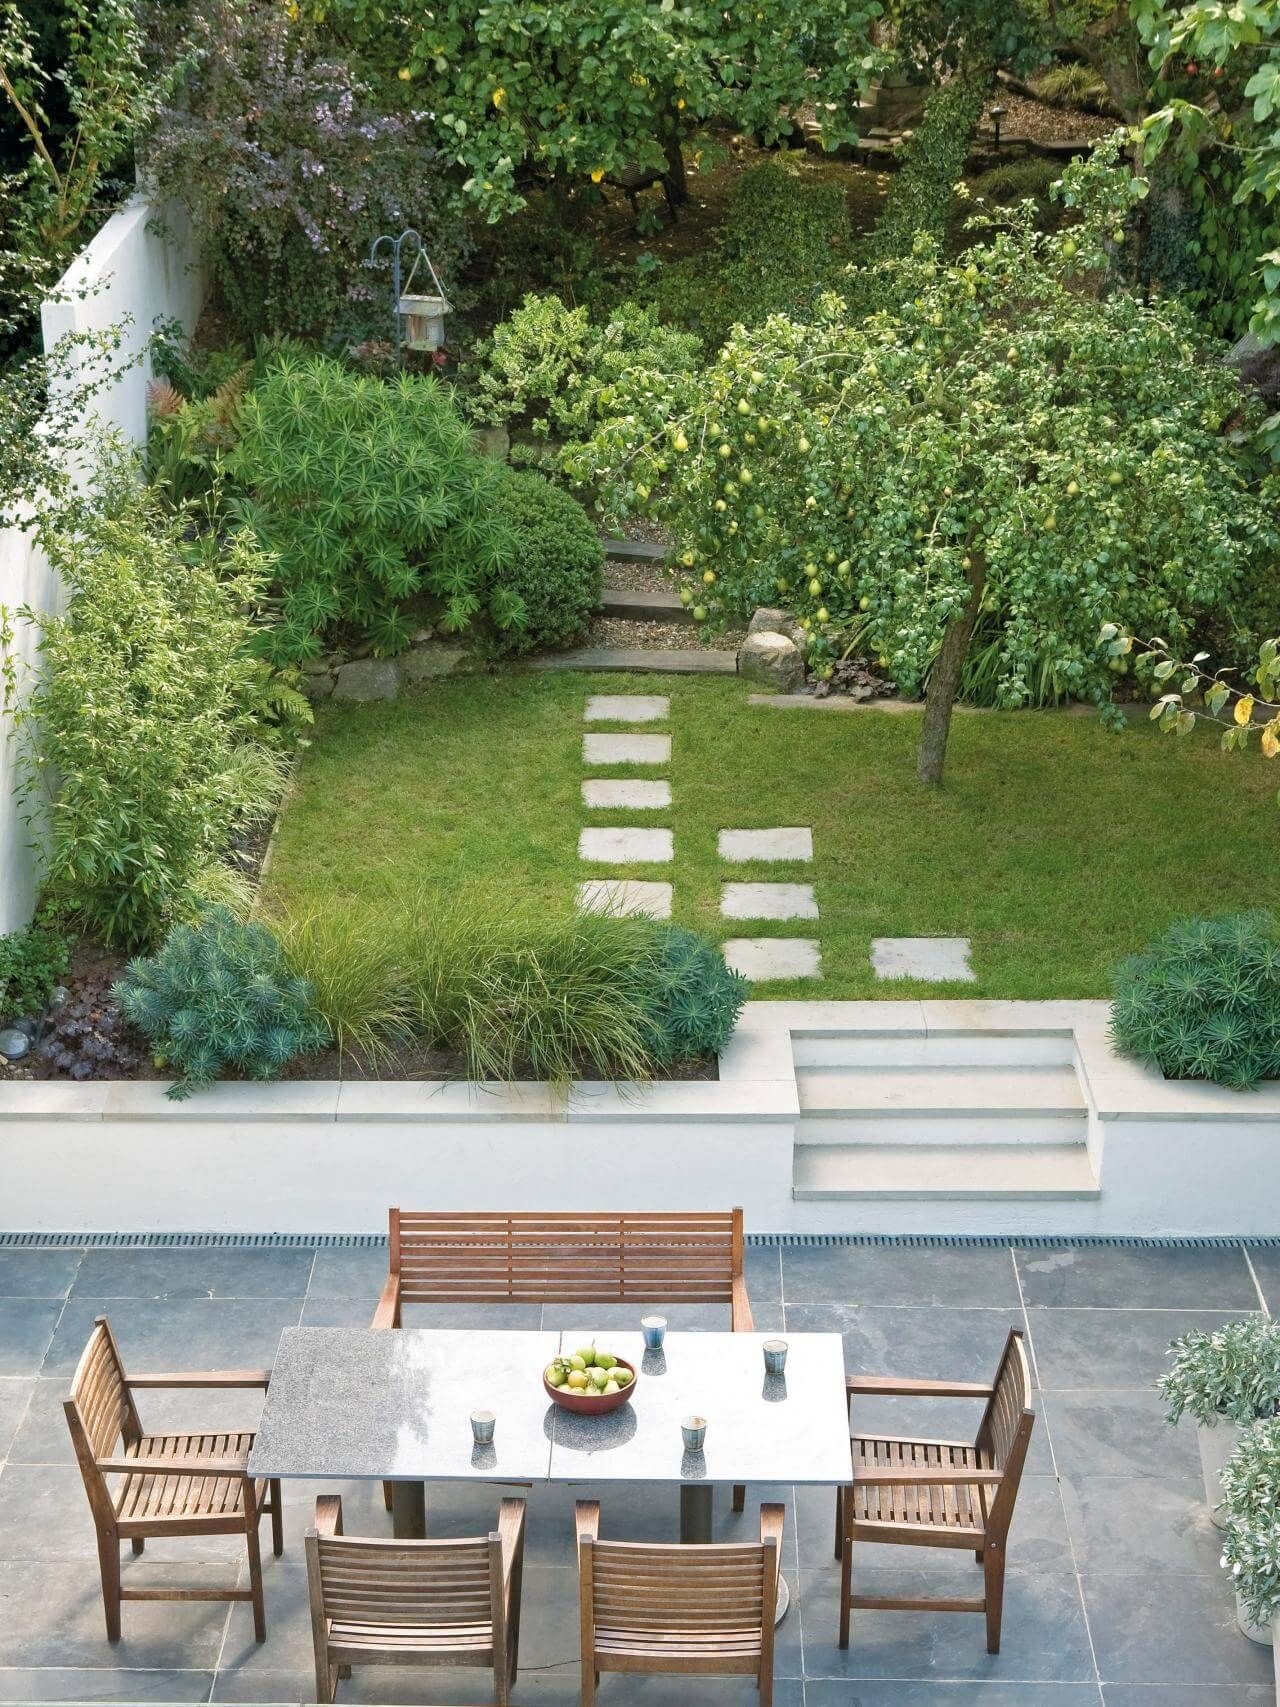 41 Backyard Design Ideas For Small Yards | small yards ... on narrow garden design with stone, best garden ideas, painted flower pot ideas, japanese garden ideas, narrow patio ideas, unique garden fountain ideas, road design ideas, container flower pot arrangement ideas, small water garden fountain ideas, front yard landscape design ideas, narrow gardening ideas, small narrow backyard ideas, narrow family room designs, long narrow garden ideas, narrow decorating ideas, small rose garden layout ideas, side yard landscaping ideas, narrow landscape ideas, japanese modern landscape design ideas, small outdoor spaces design ideas,